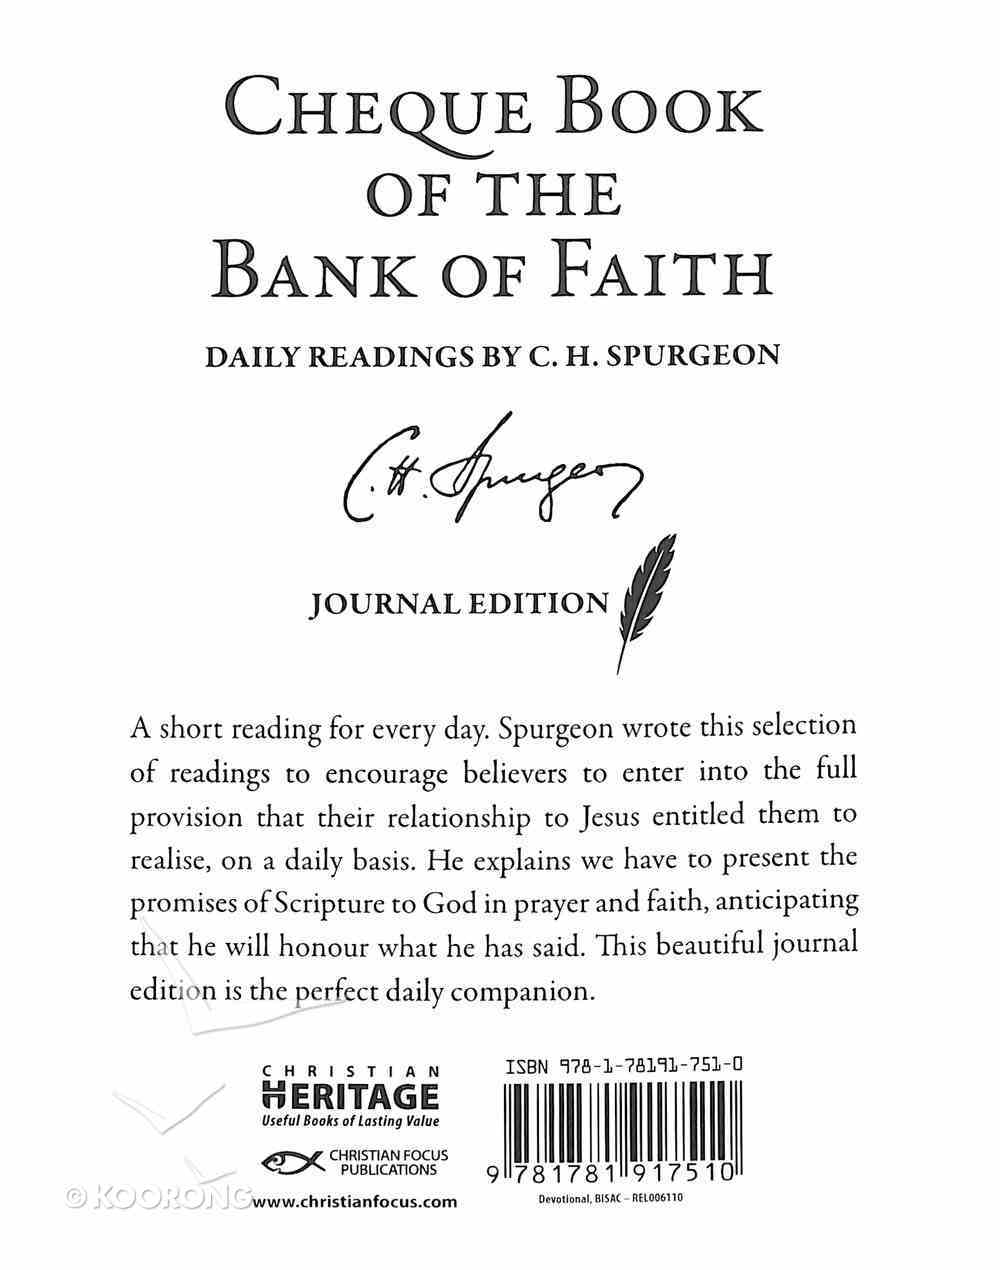 Chequebook of the Bank of Faith: Daily Readings Journal Edition Hardback